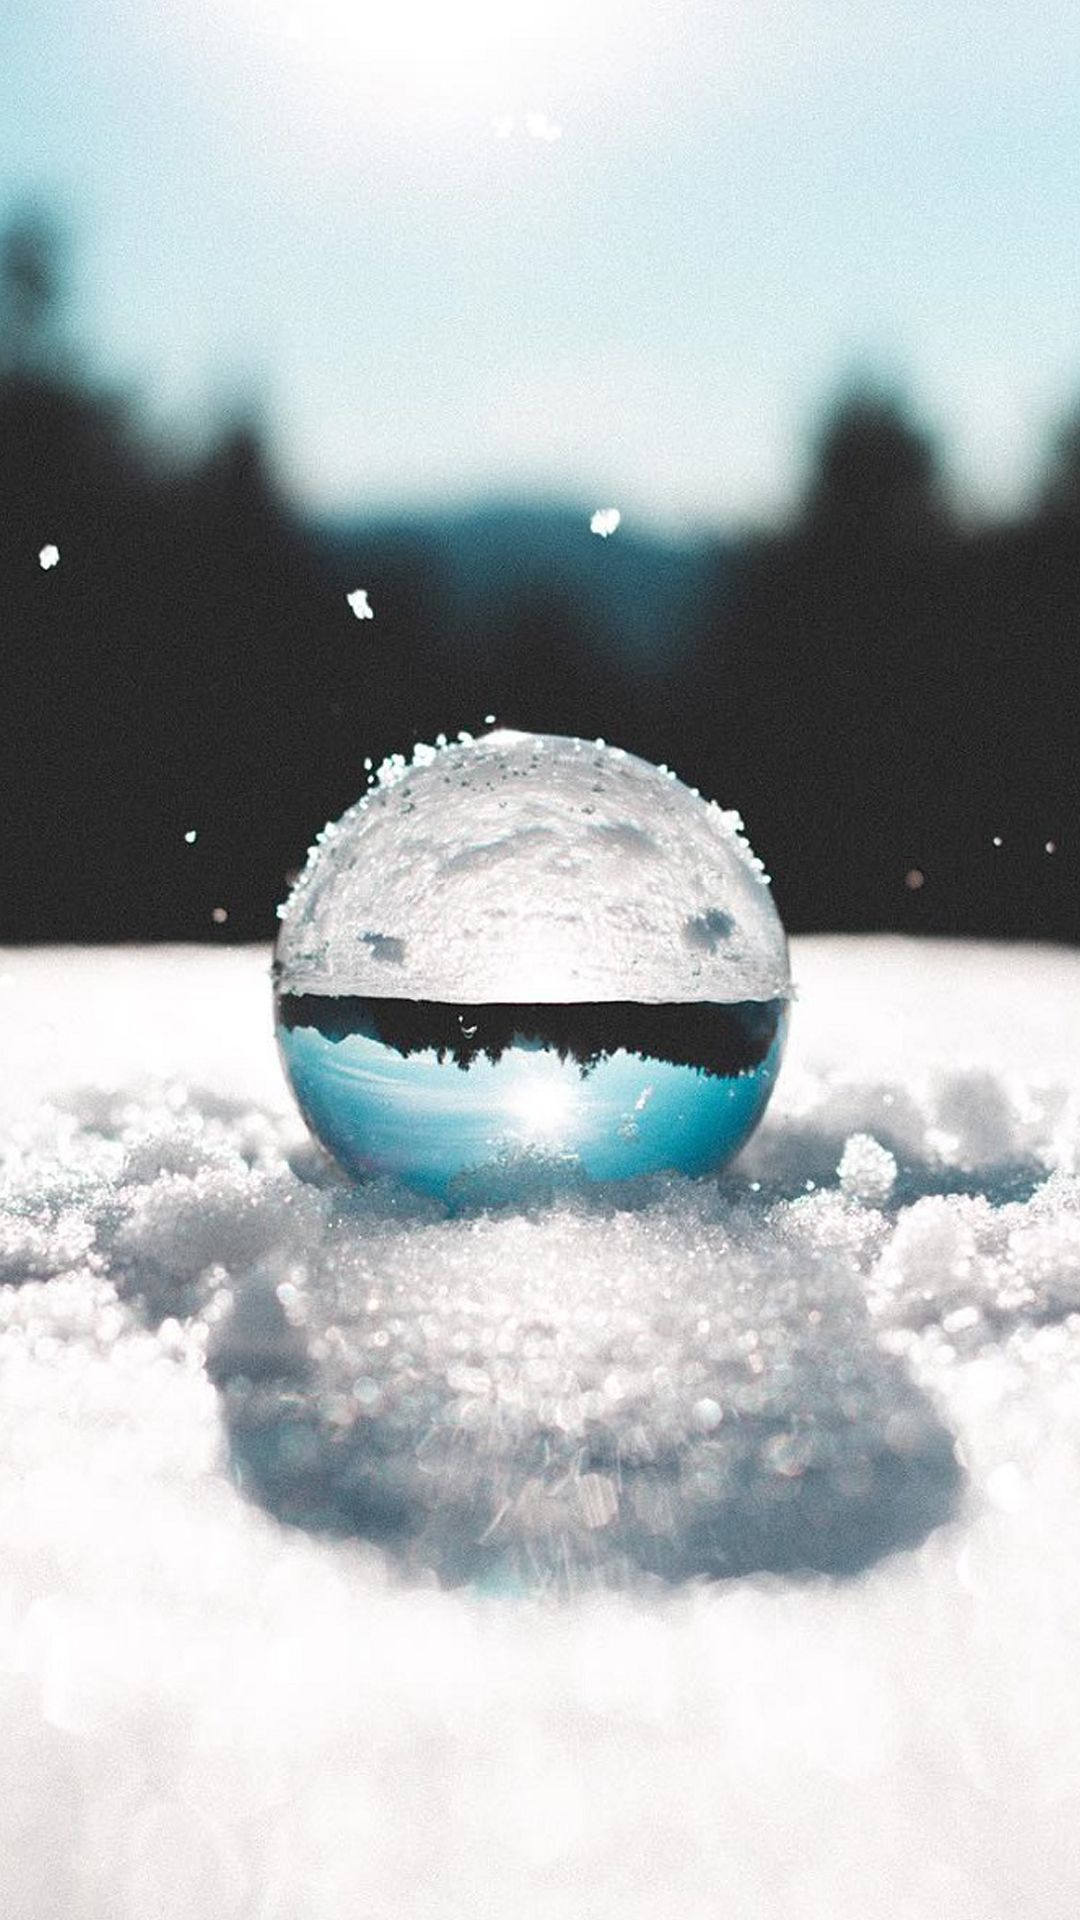 Hd wallpaper for j7 prime - Art Nature Wallpaper For Samsung Galaxy J7 Prime Background With Ball On Snow